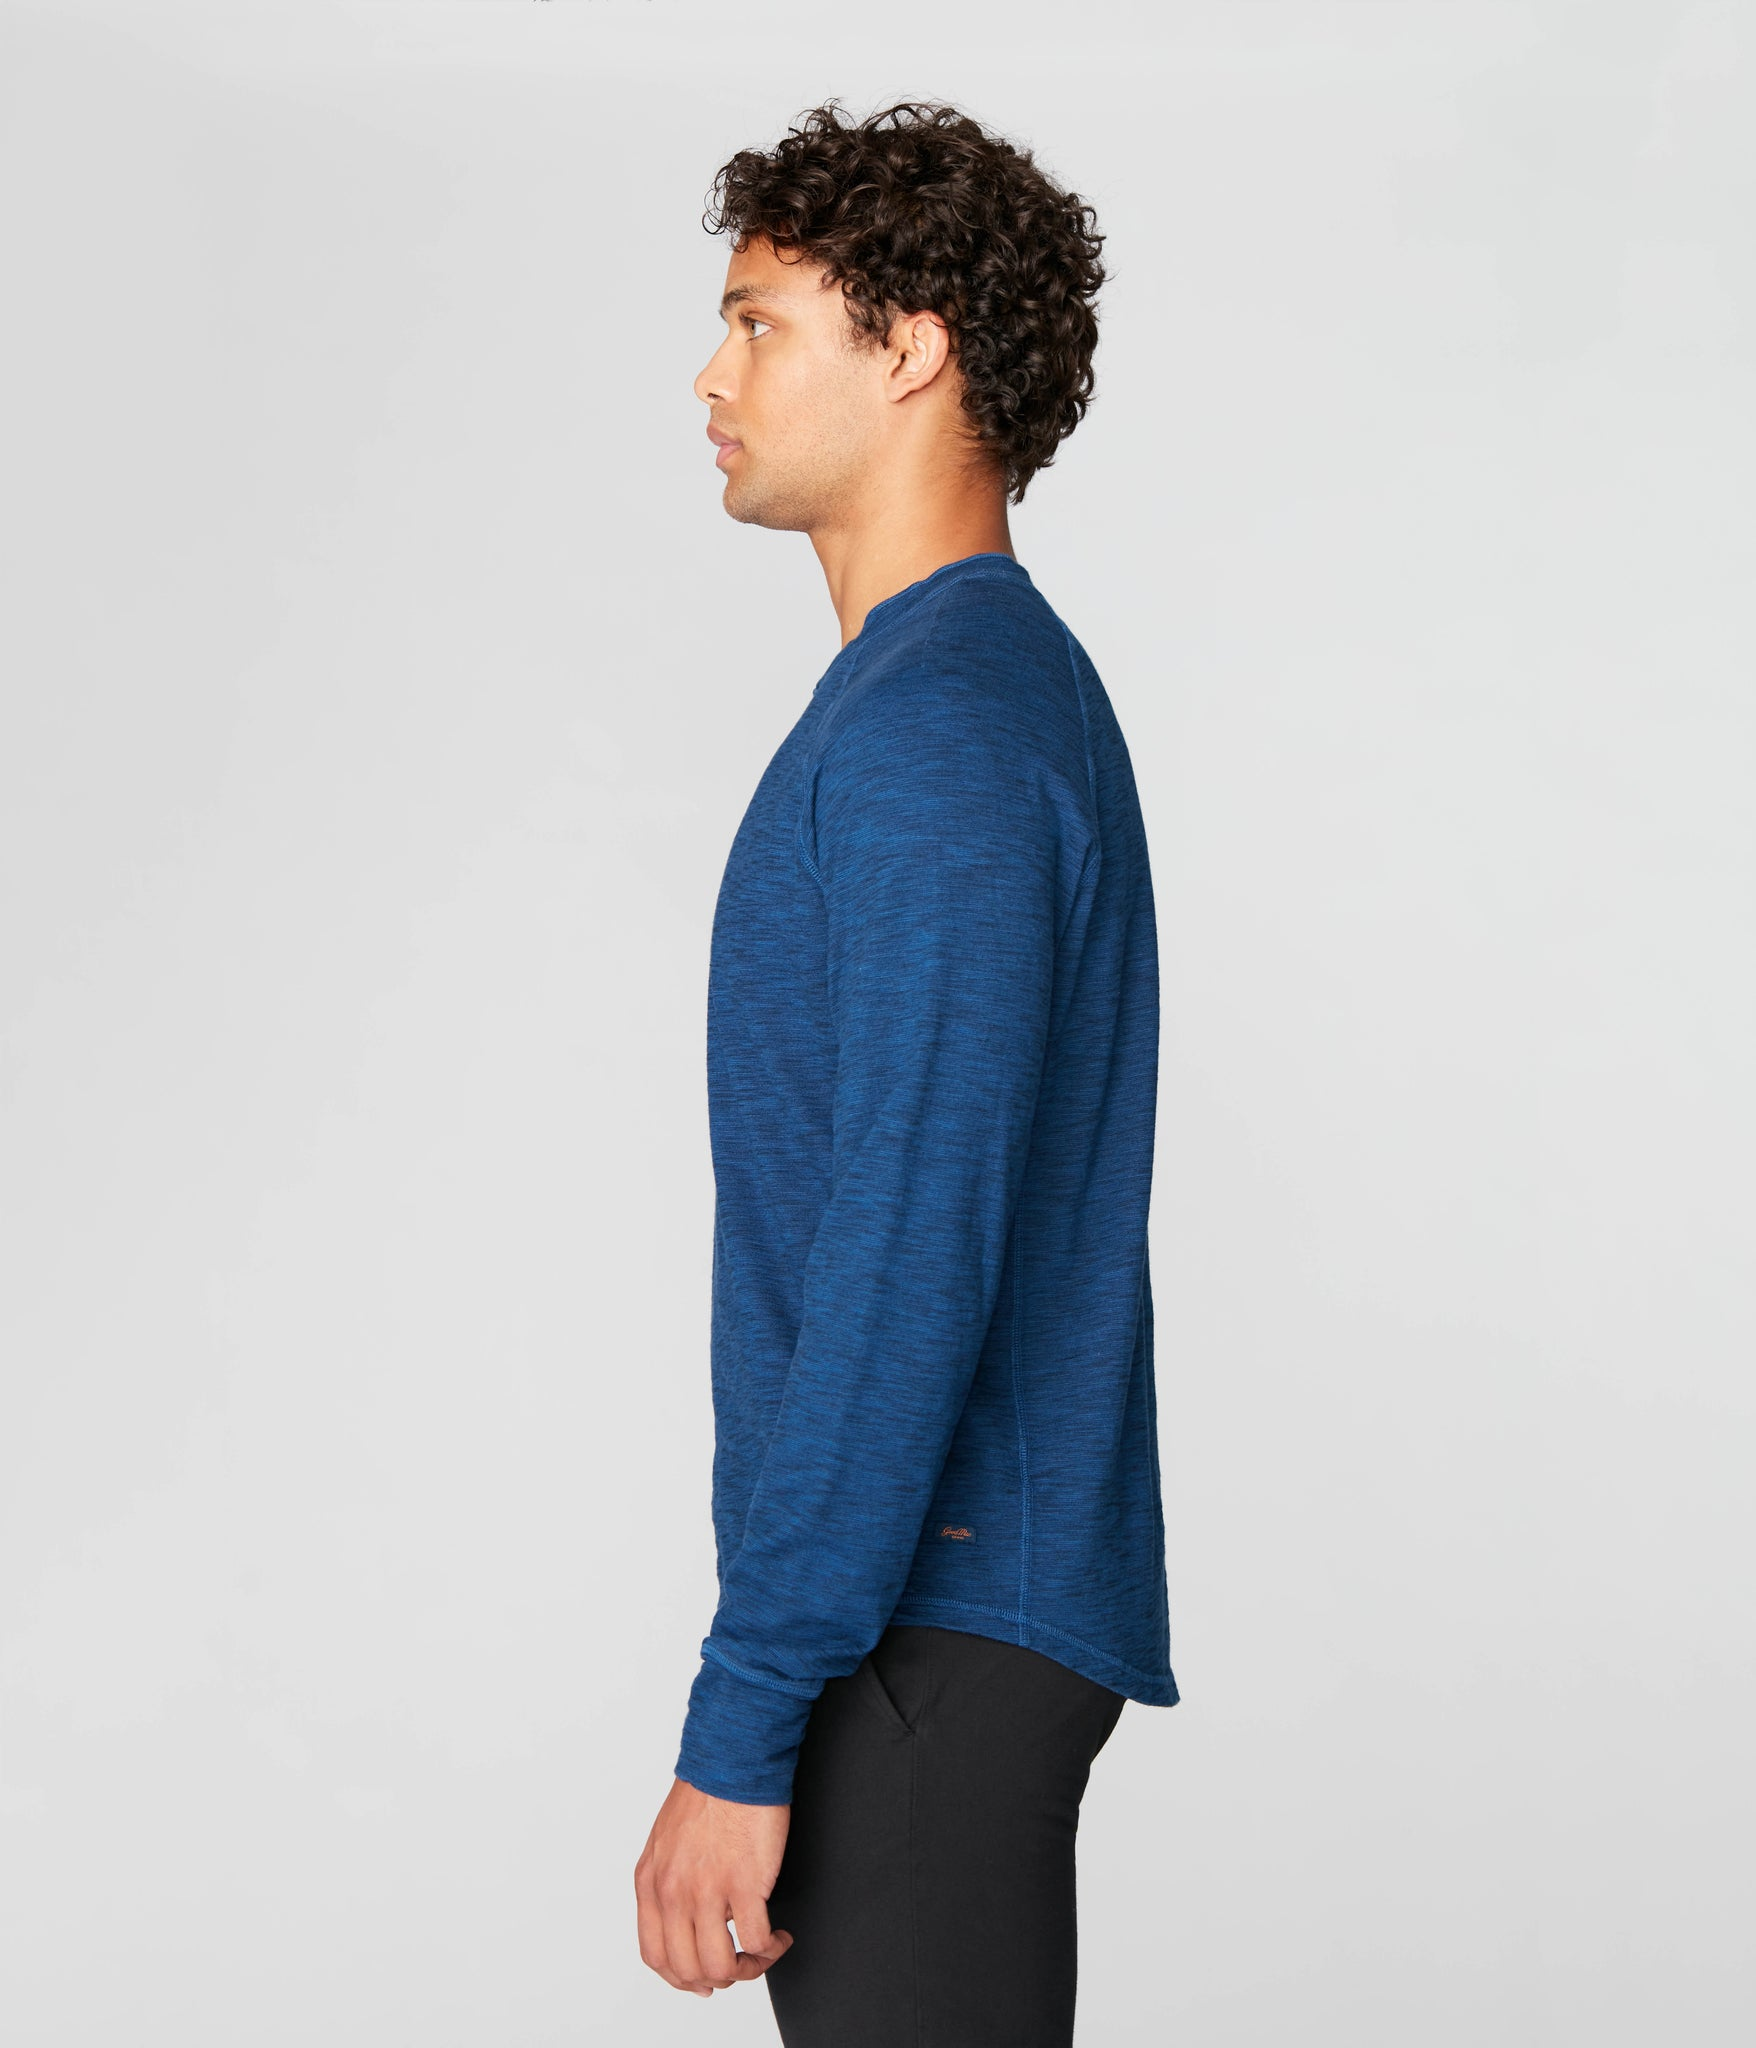 Legend Henley in Black Marl Soft Slub - Blue